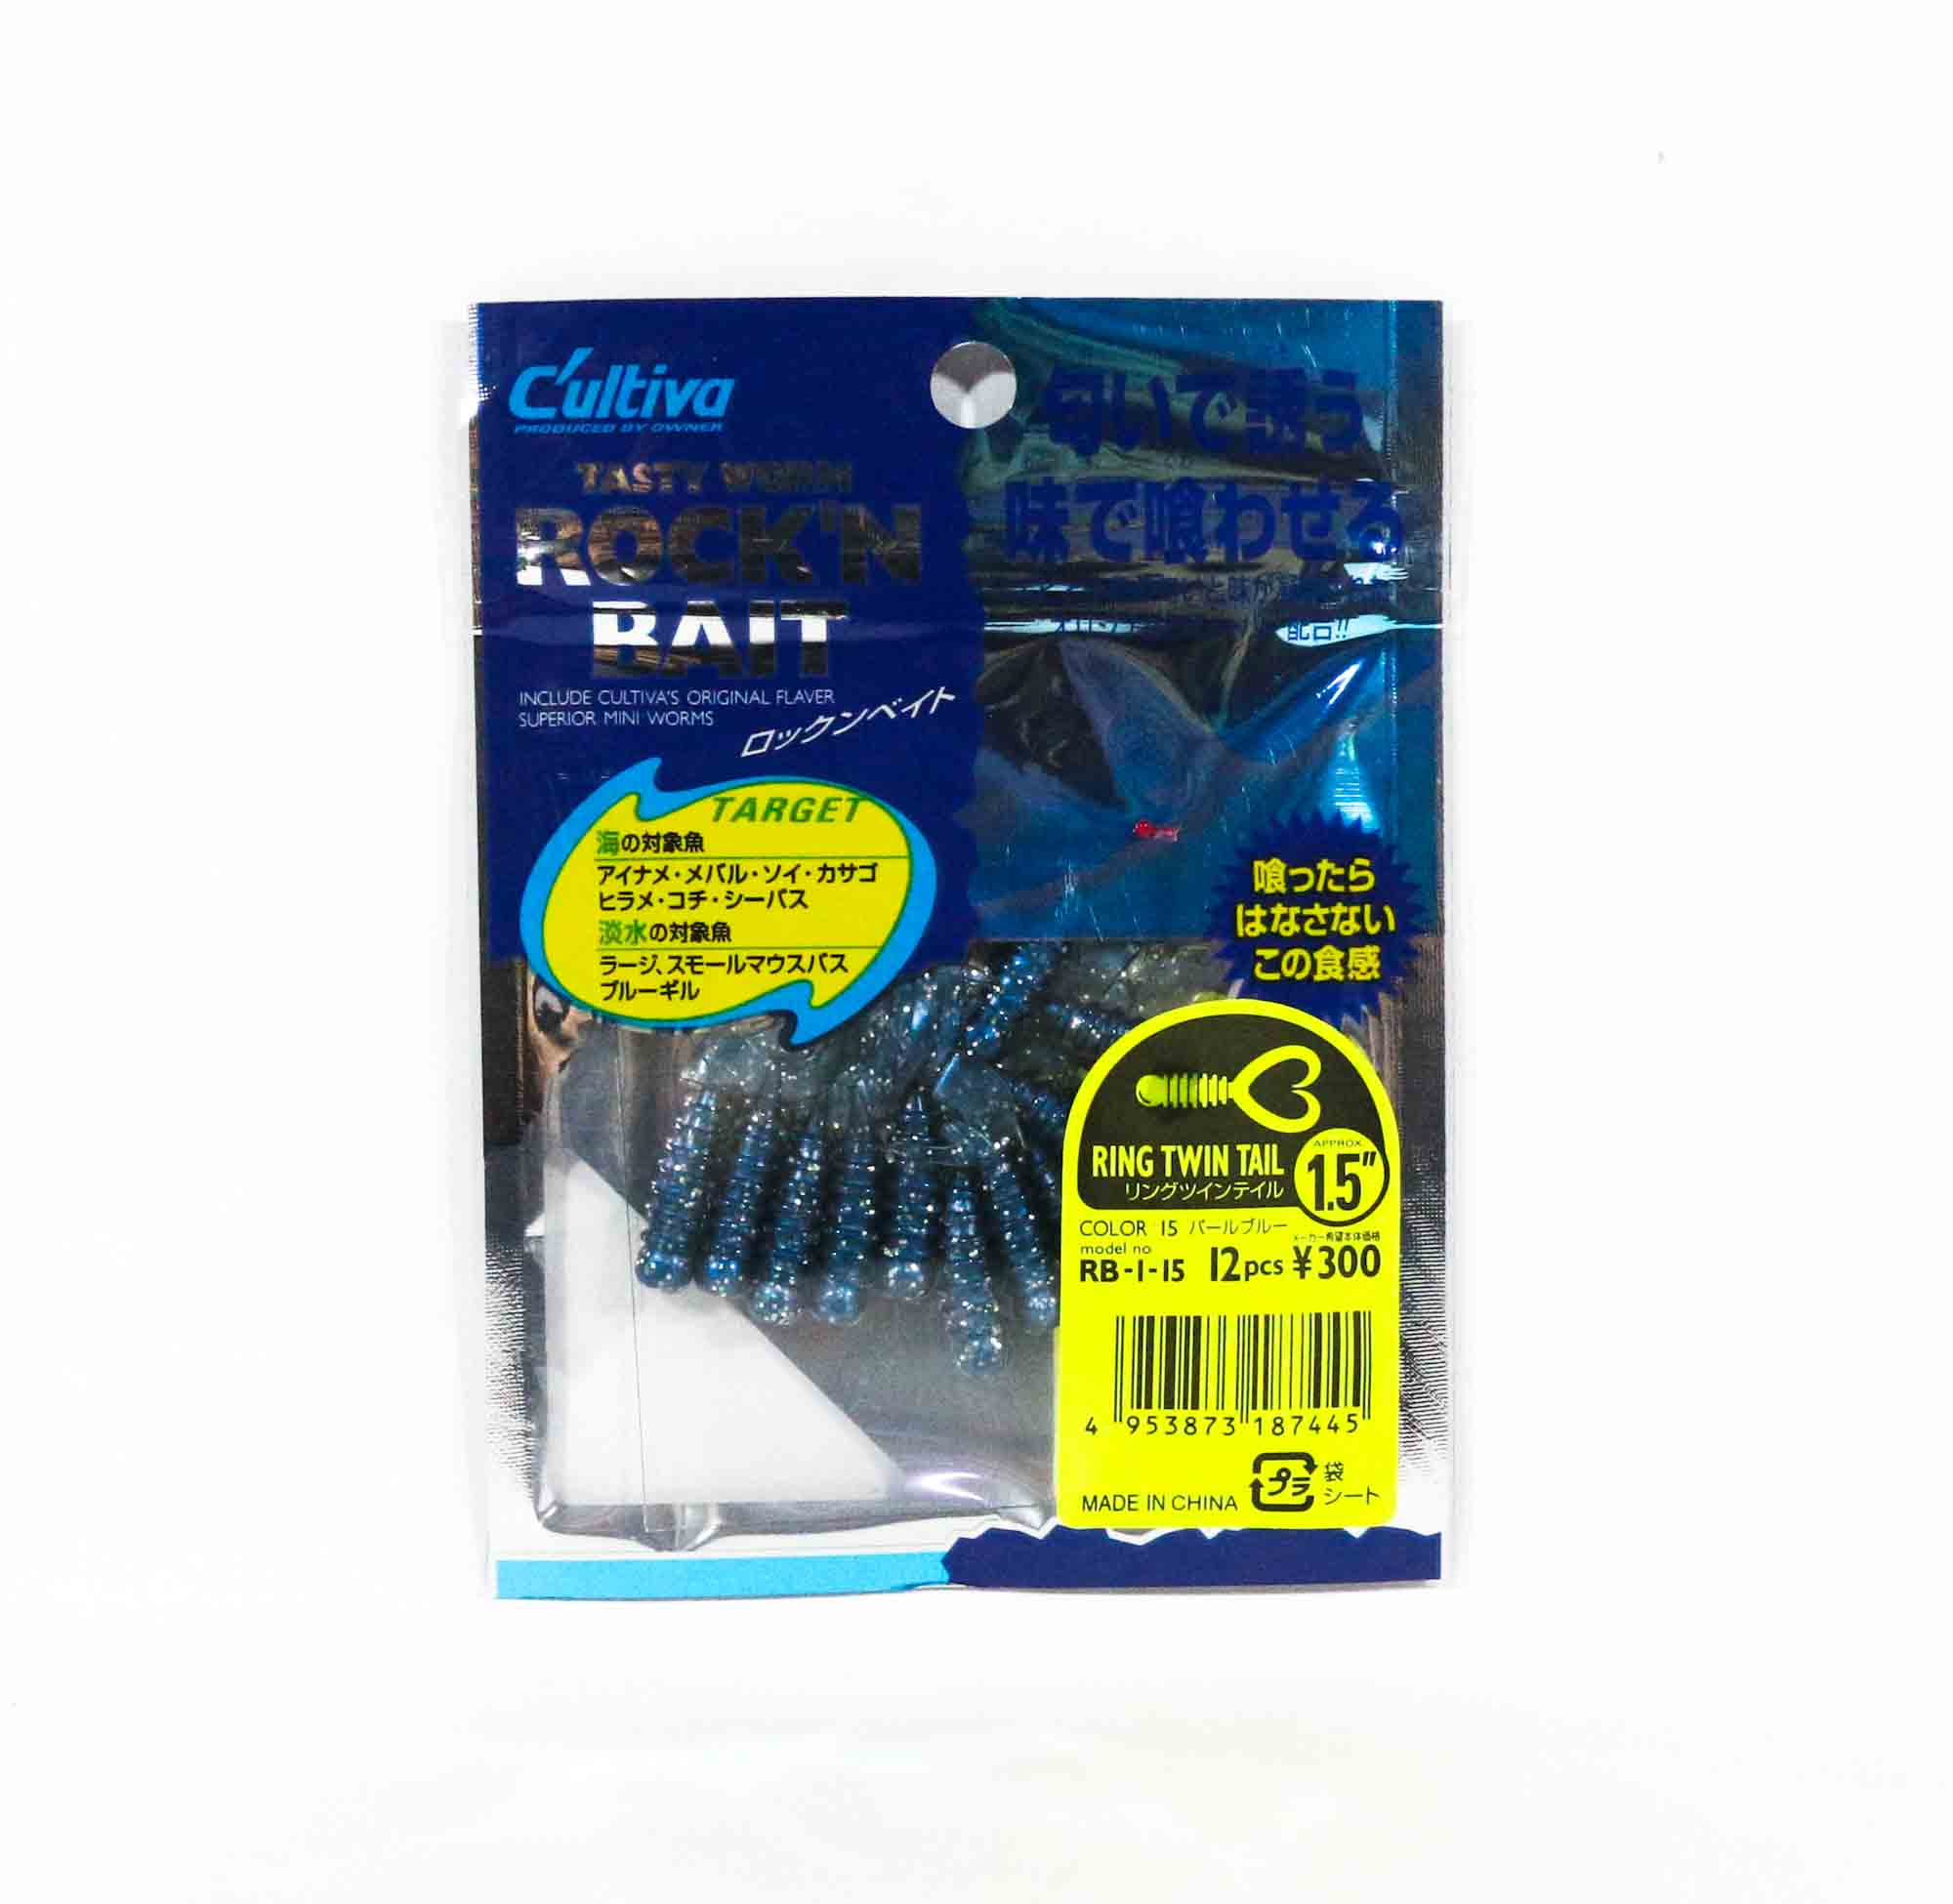 Owner Soft Lure RB-1 Ring Twin Tail 12 Pieces 1.5 Inches 15 (7445)